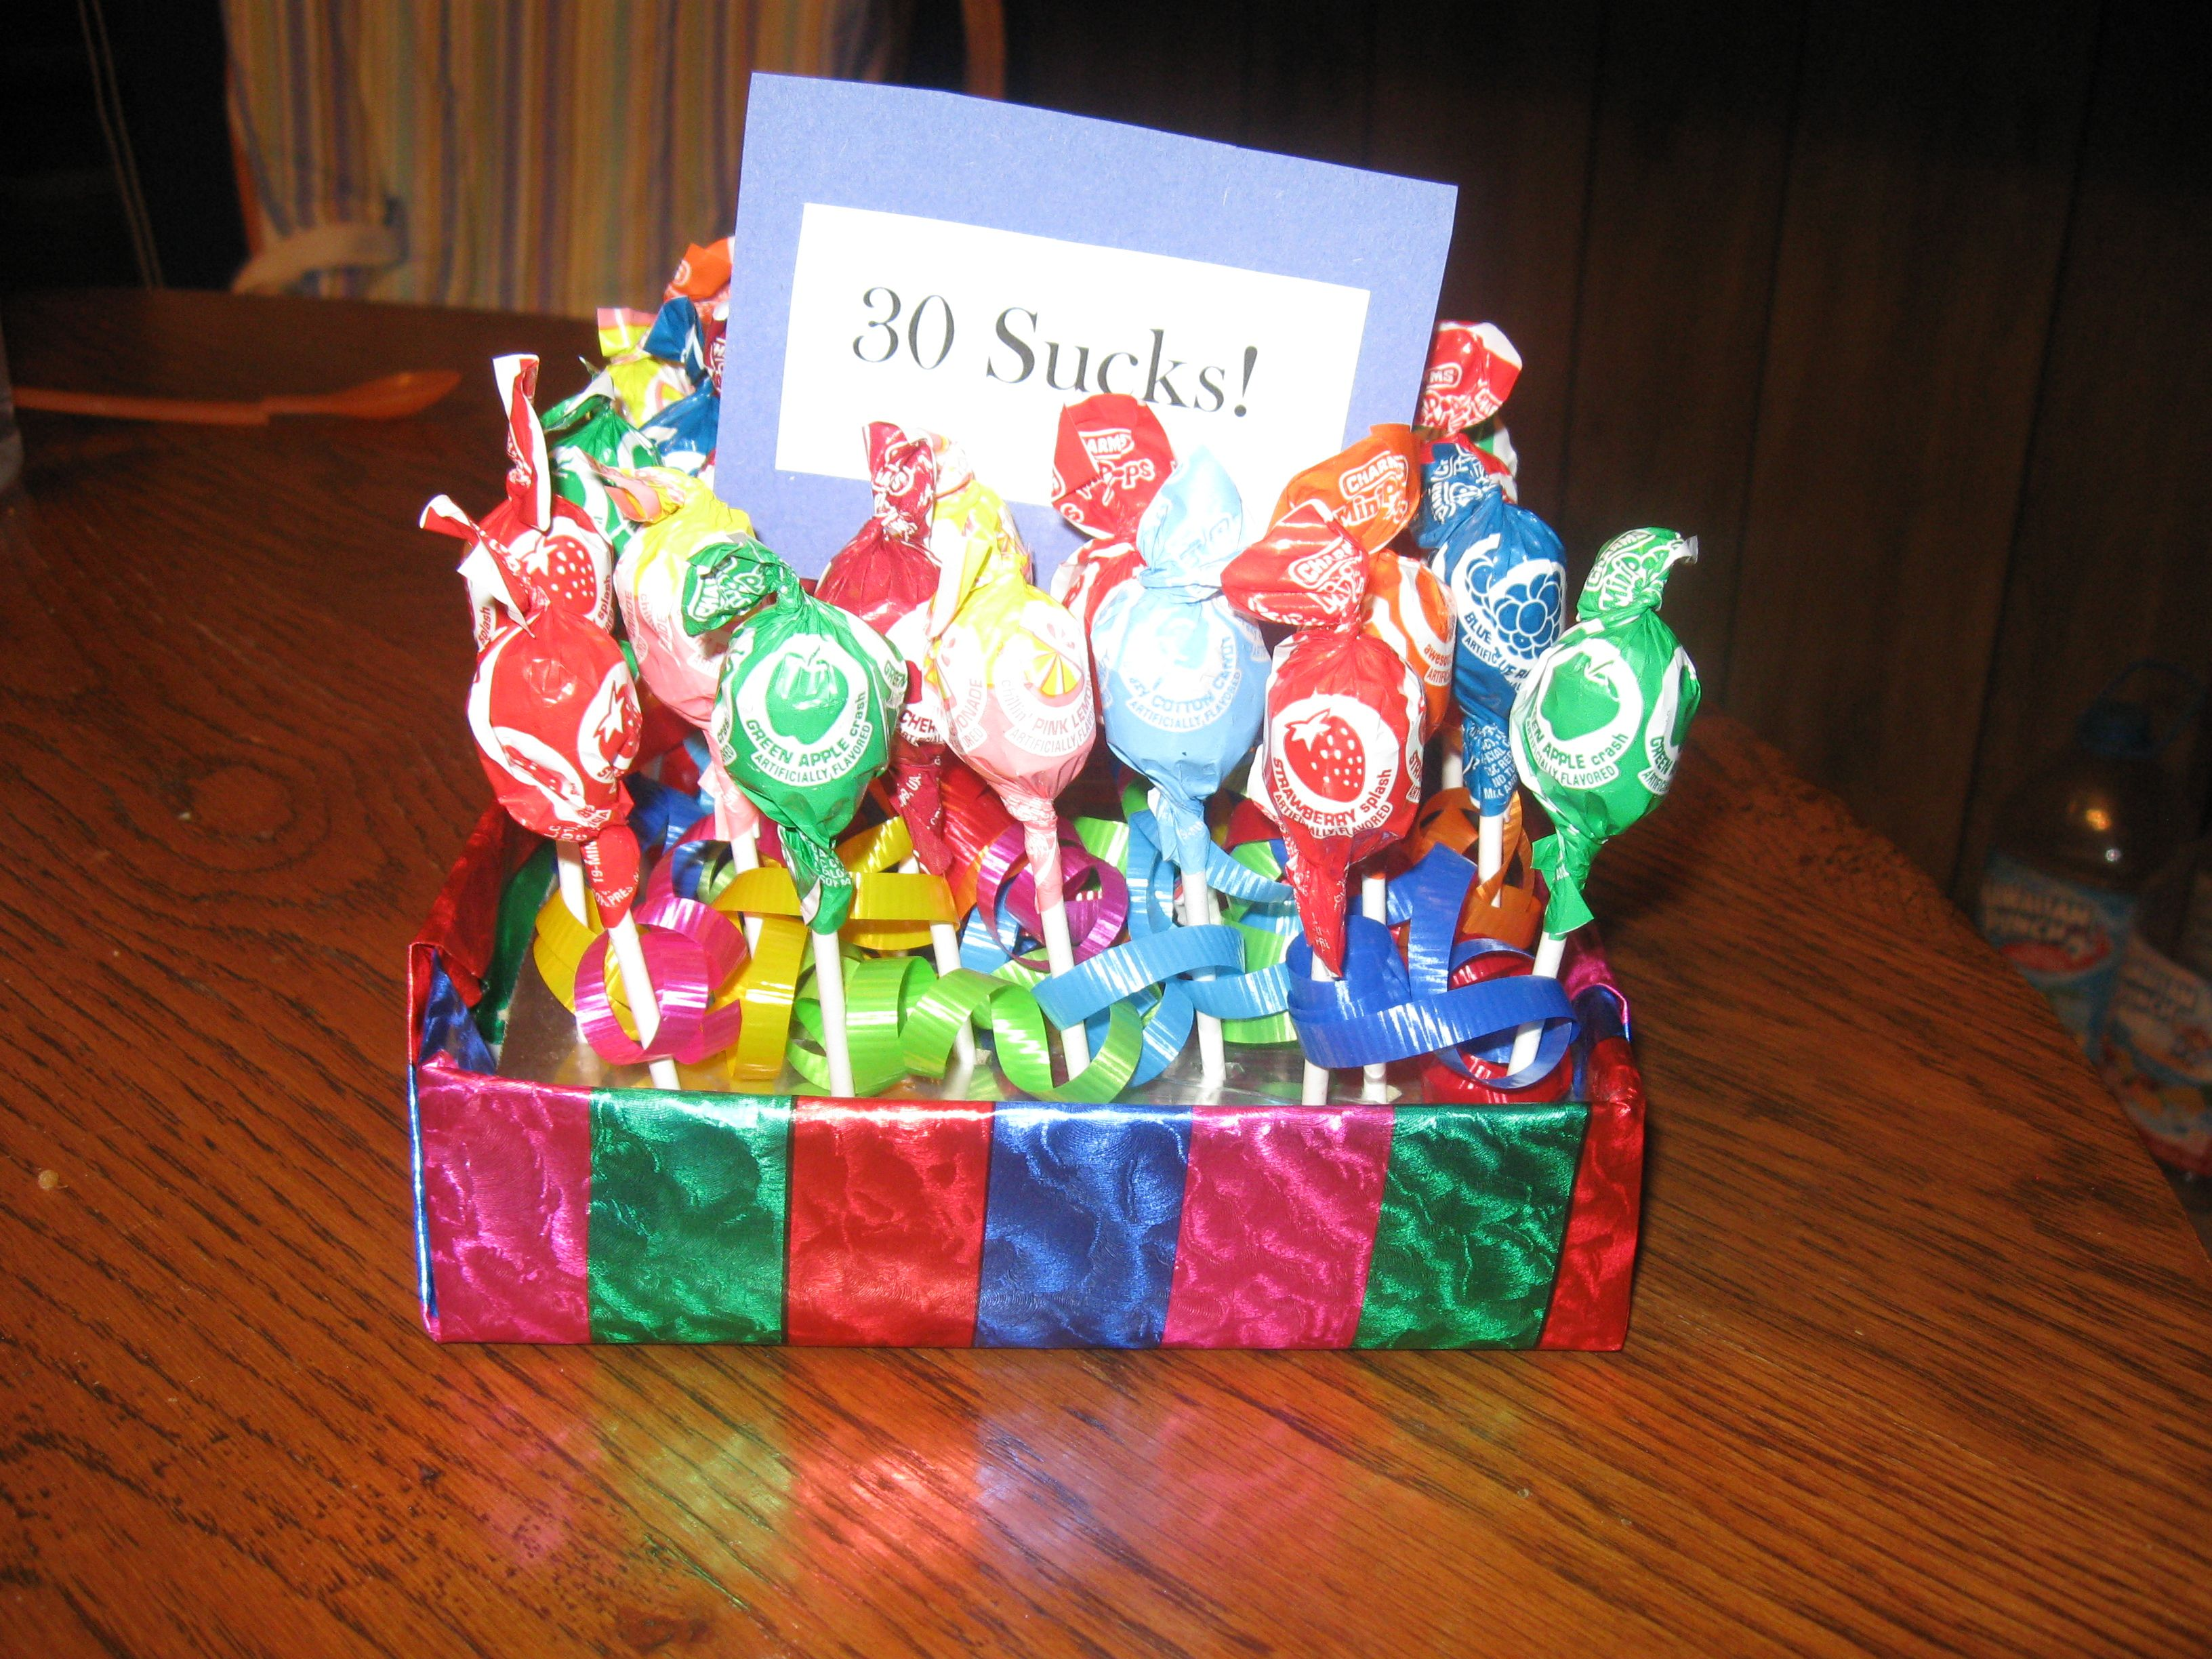 30th birthday idea - 30 sucks gift I created for a coworker.